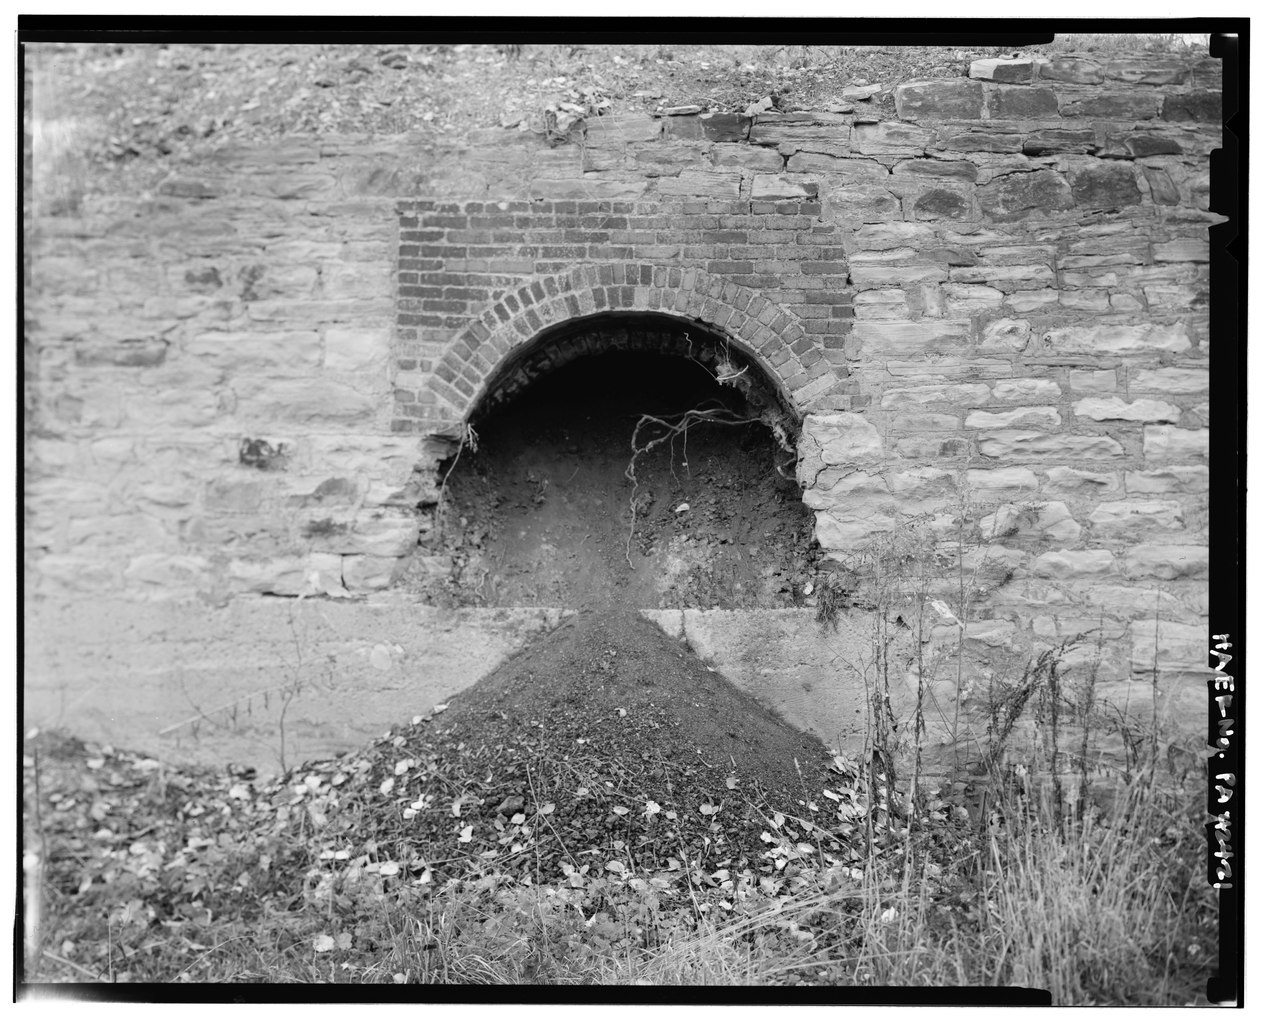 File VIEW OF A SINGLE BEEHIVE COKE OVEN THE USE OF BRICK